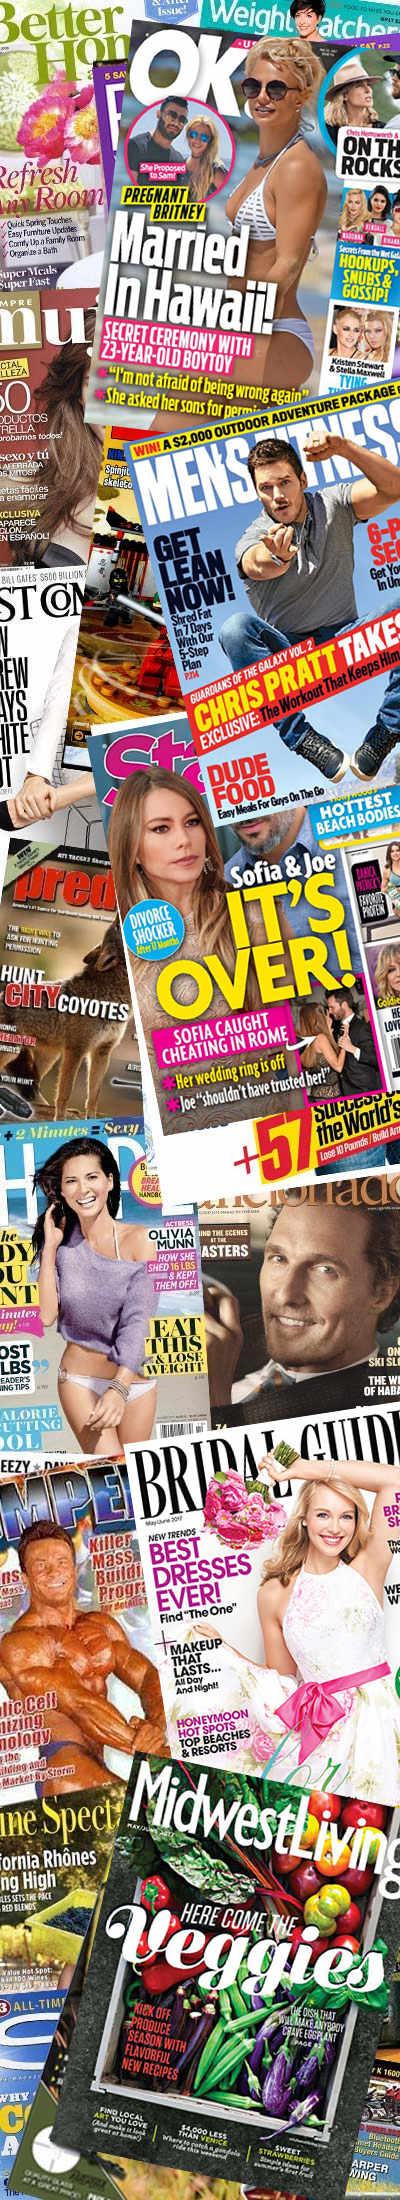 55 FREE Magazines Today [Verified Received By Mail]